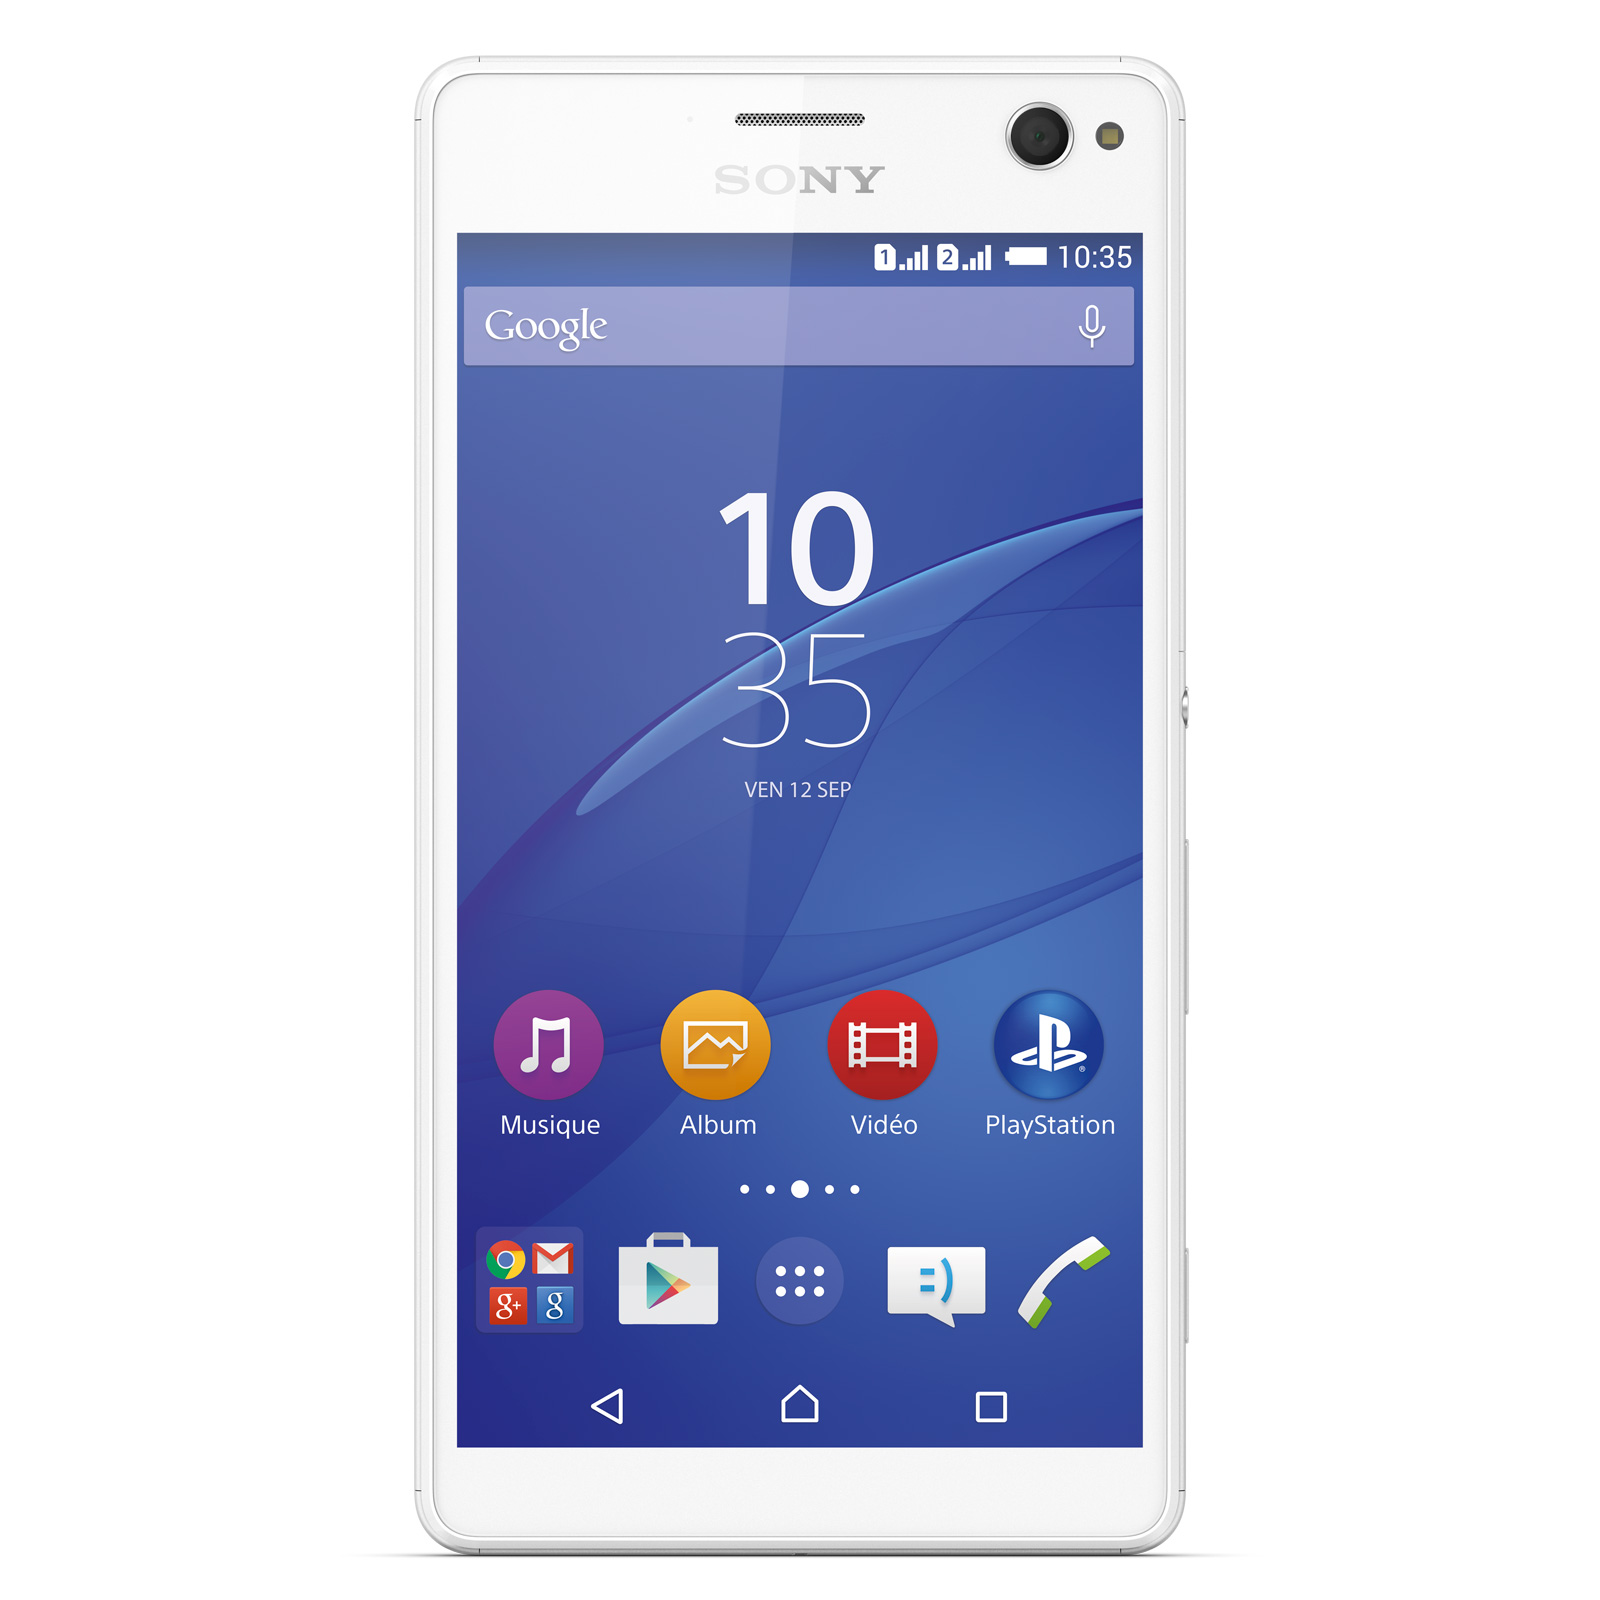 sony xperia c4 dual sim blanc mobile smartphone sony sur ldlc. Black Bedroom Furniture Sets. Home Design Ideas